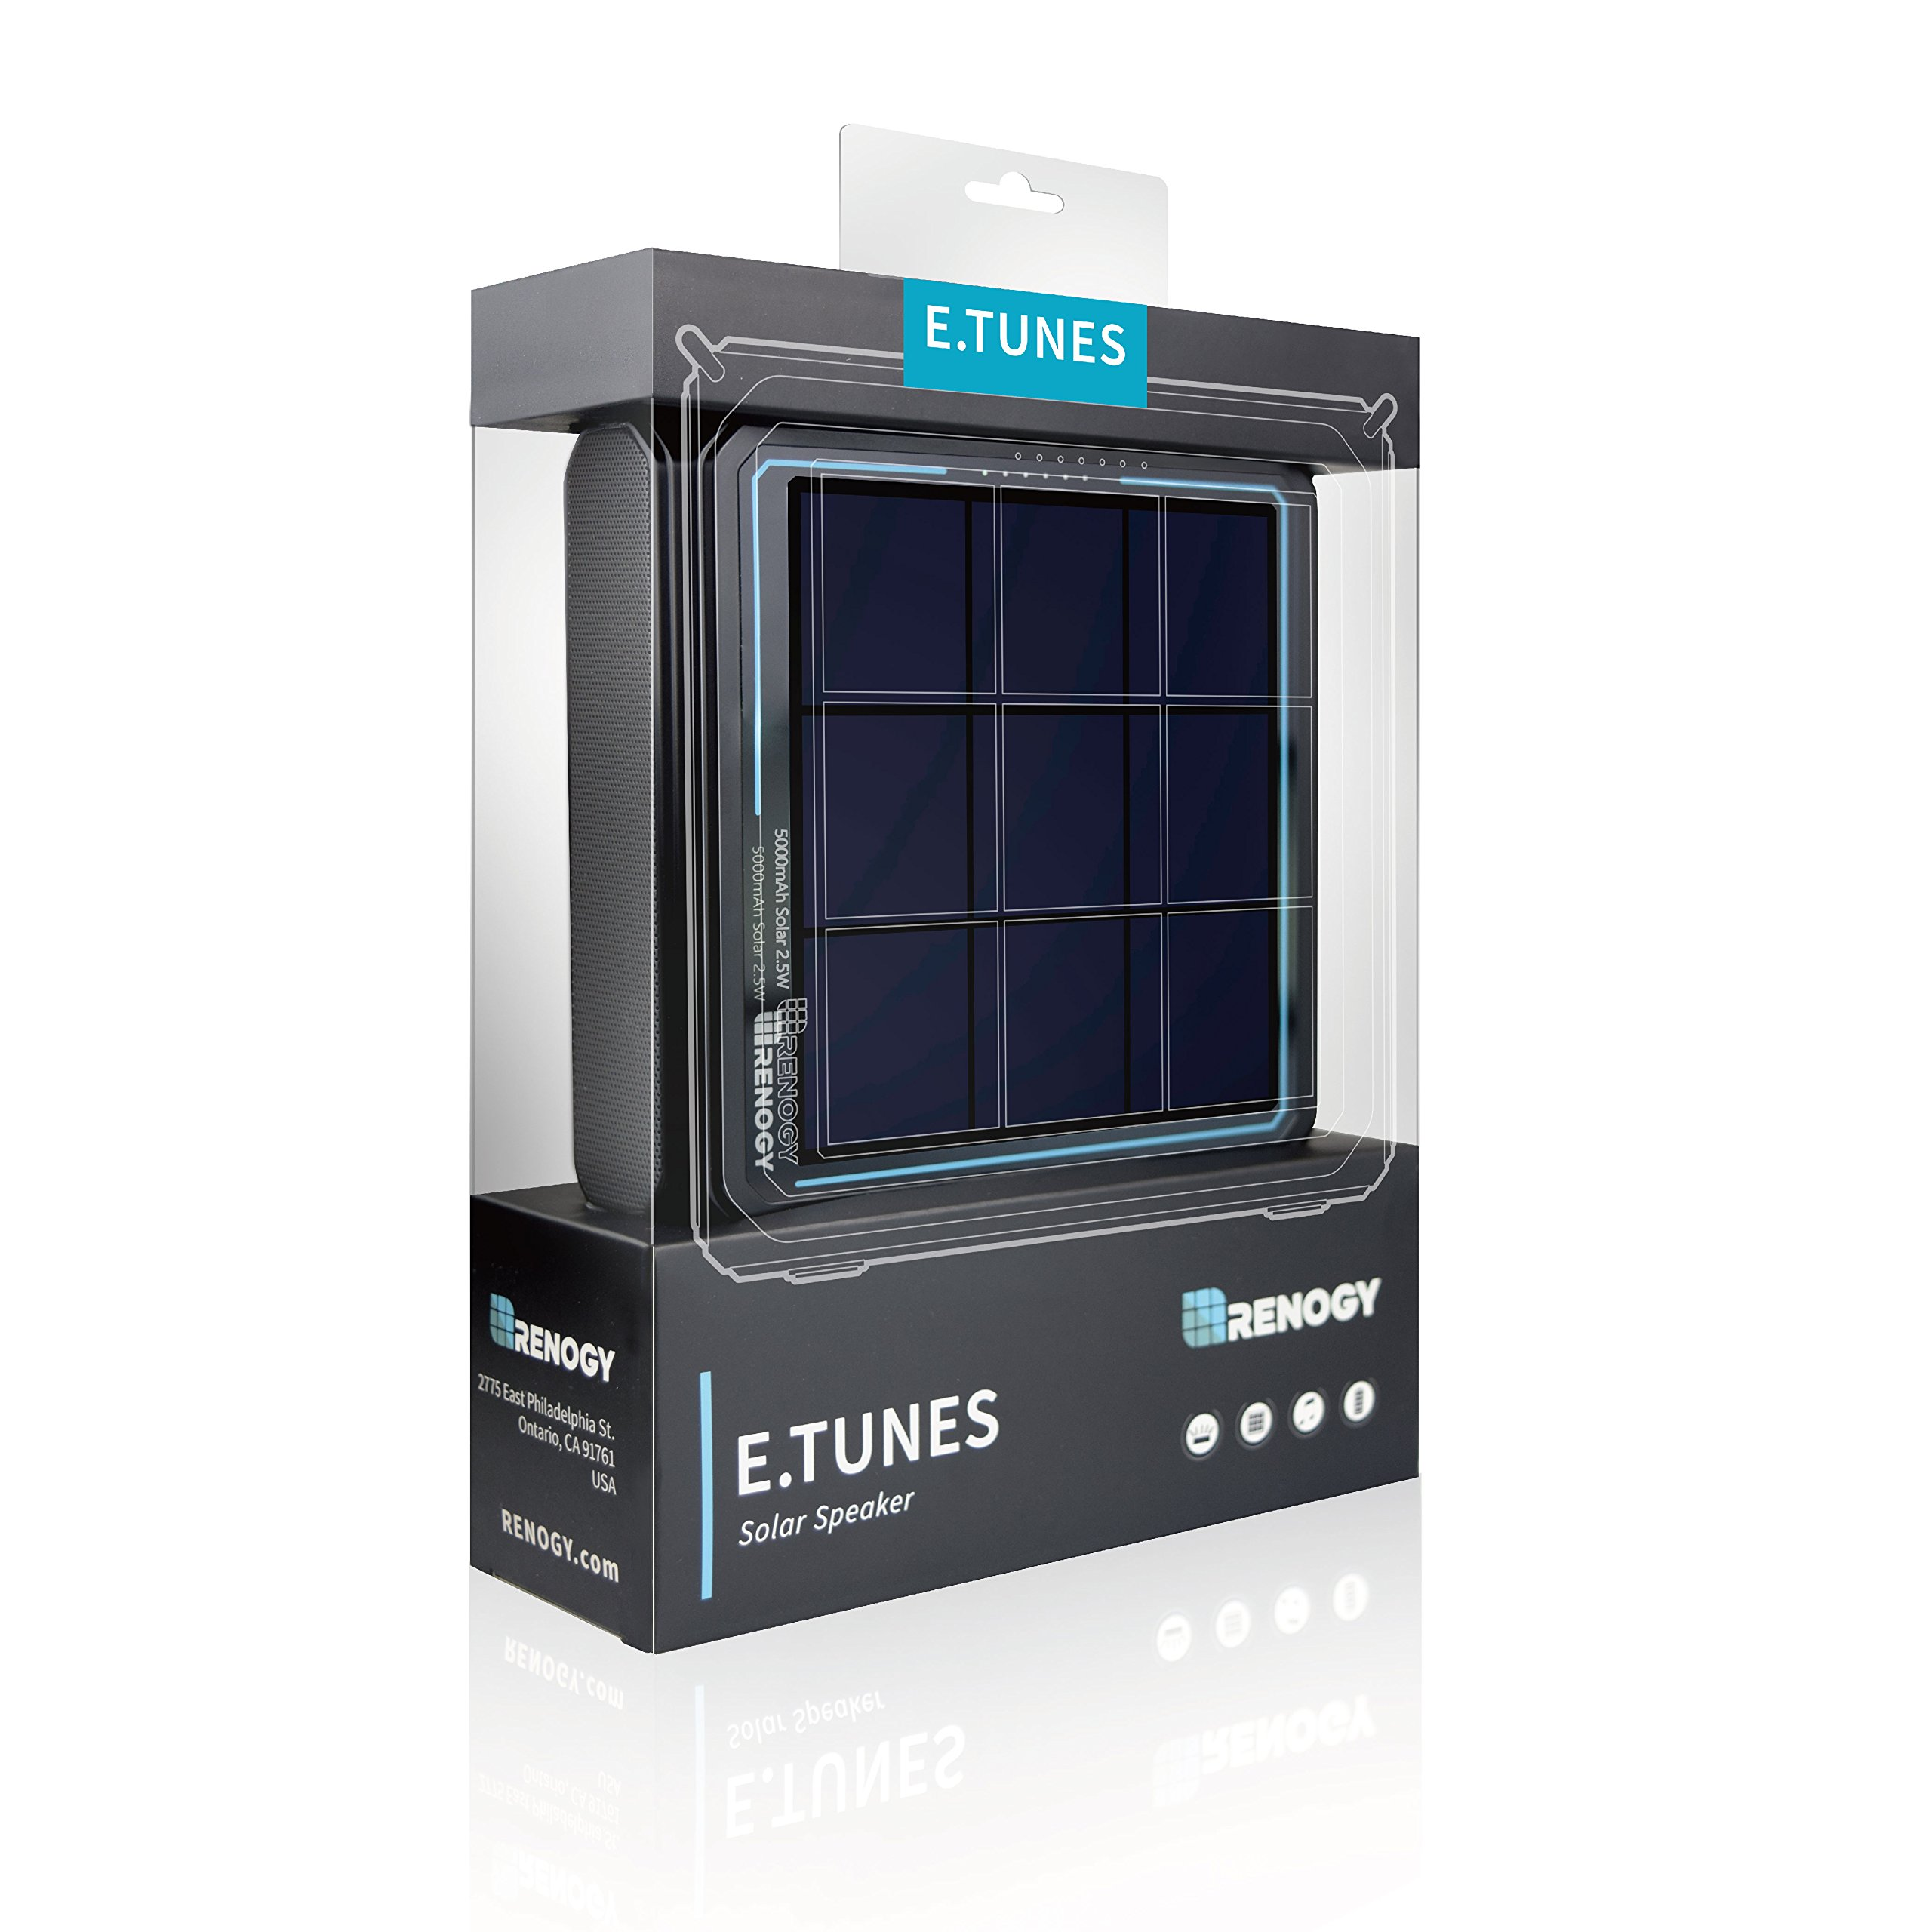 Renogy - E.TUNES - Portable Solar Power Wireless Bluetooth Outdoor Speaker for Beach, Poolside, Biking, and Camping by Renogy